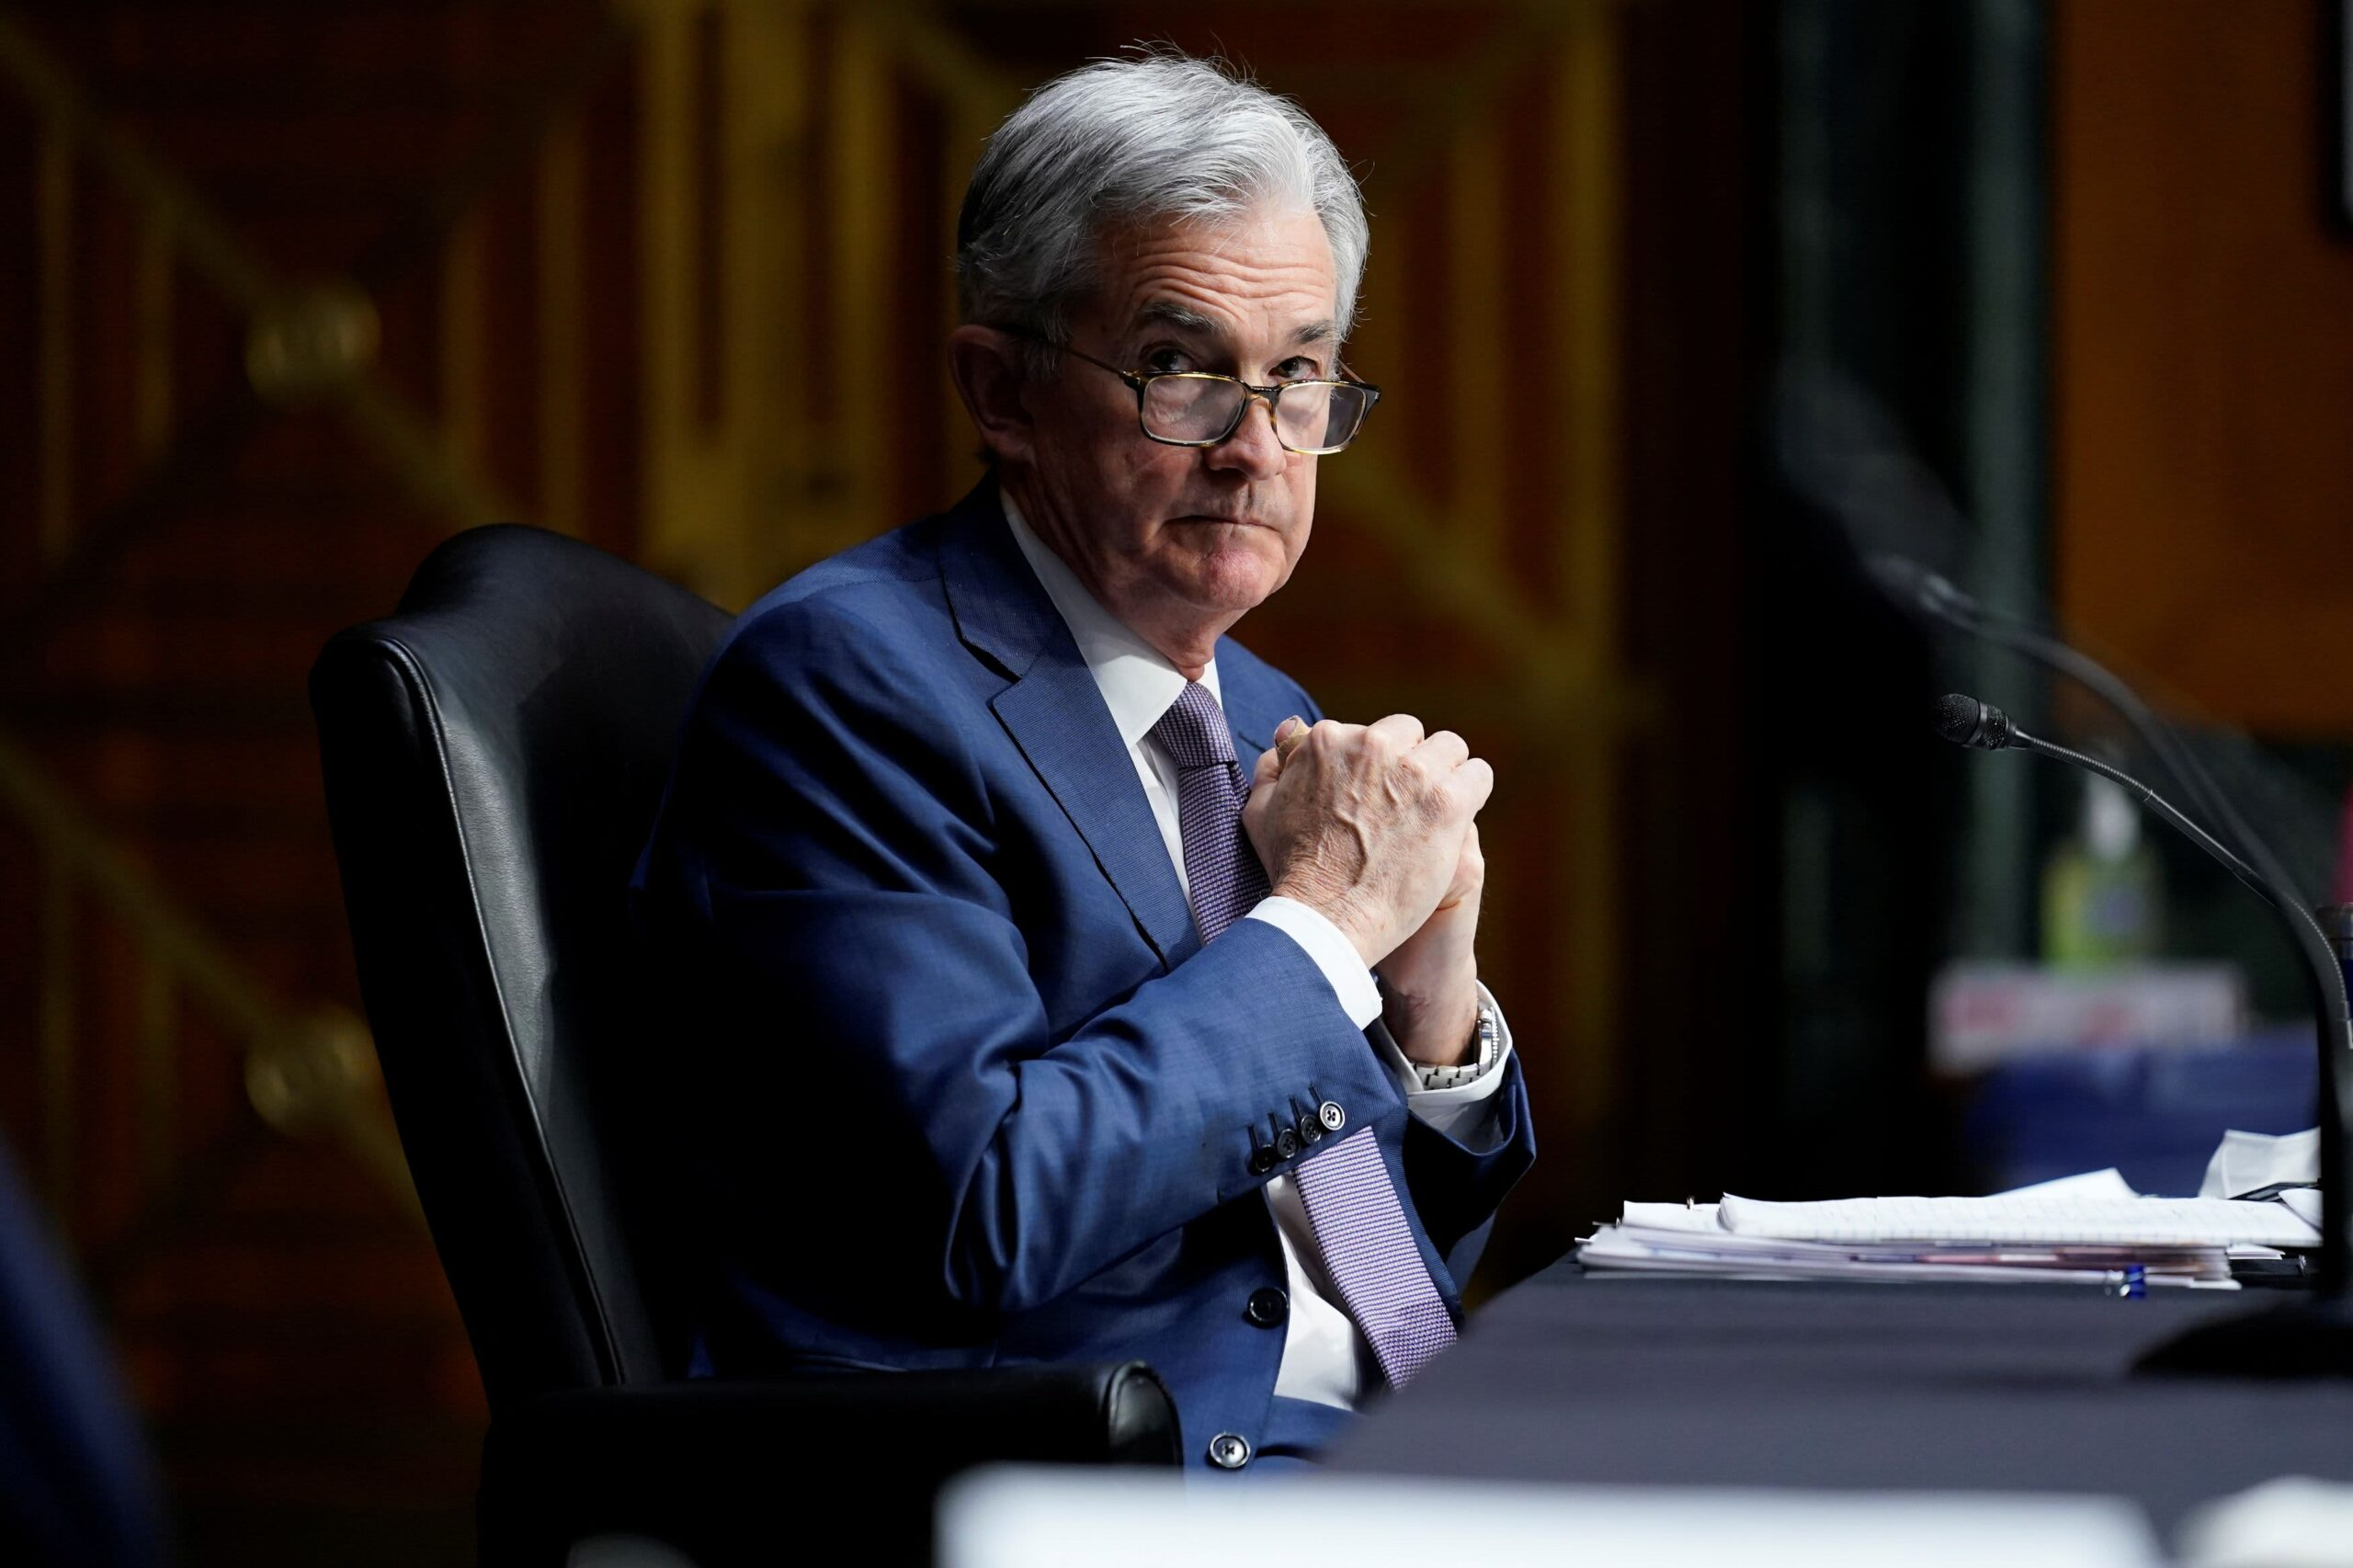 Fed could be source of volatility as Powell speaks in week ahead